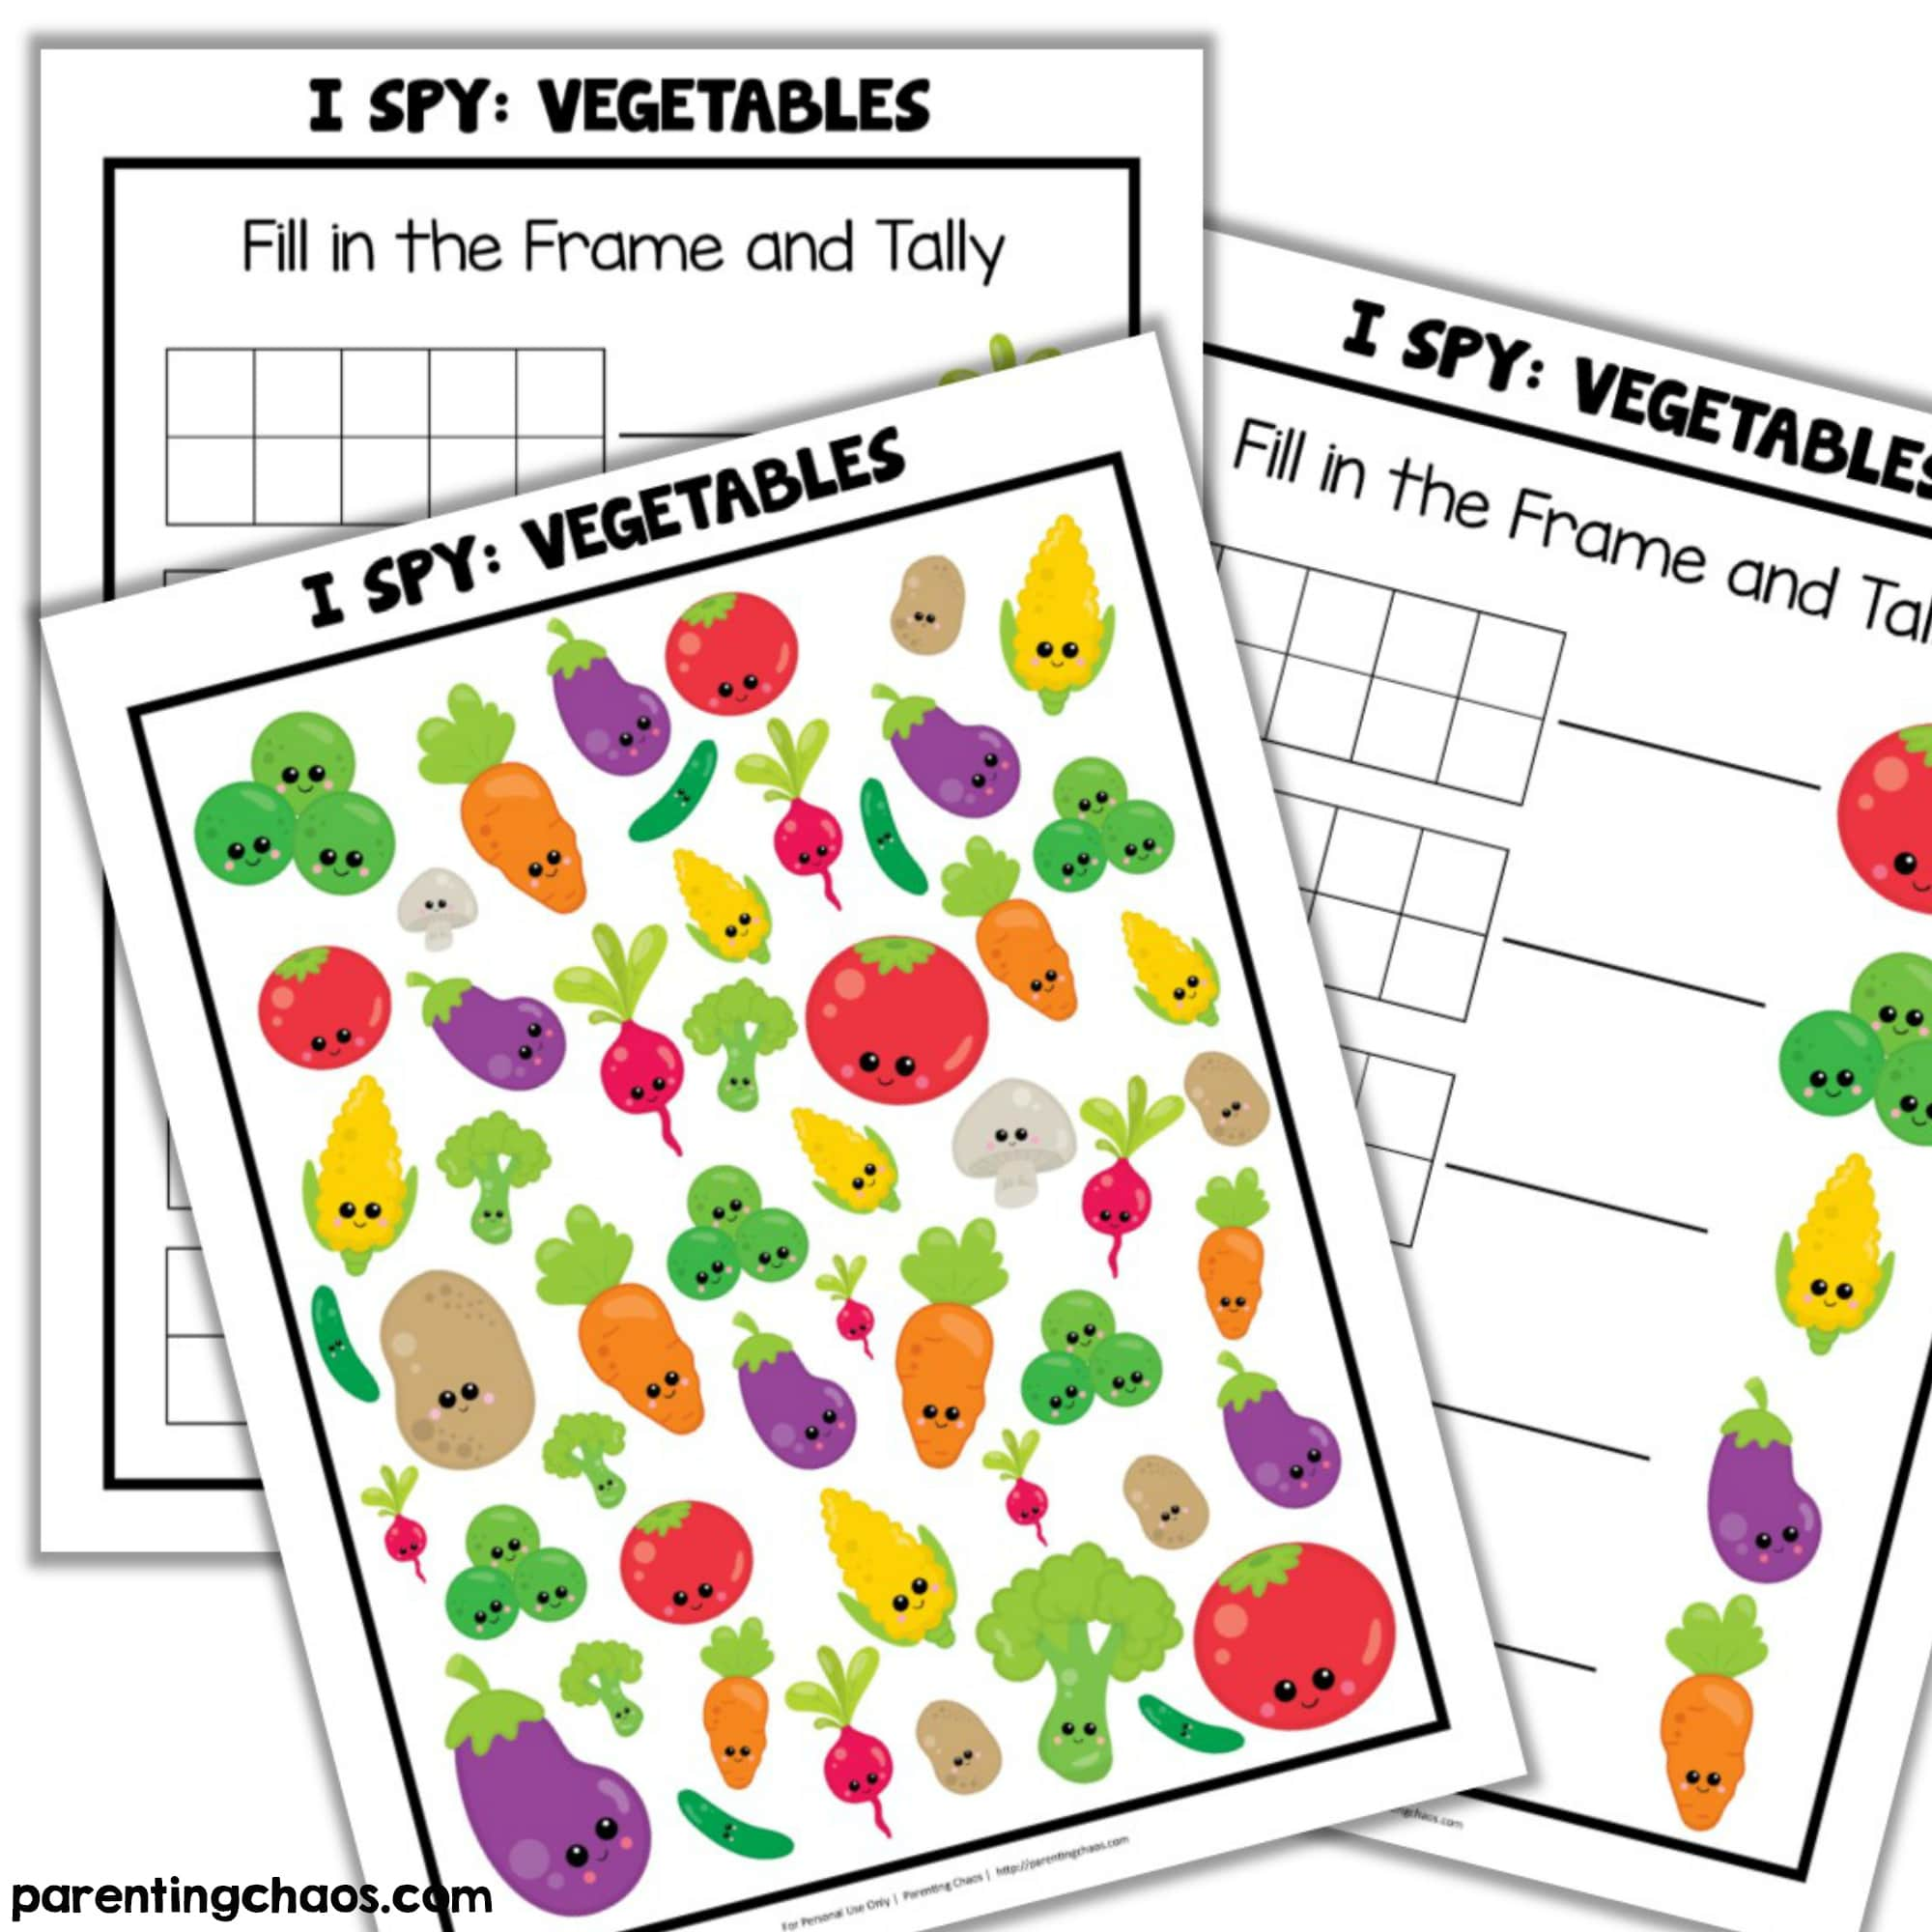 photograph regarding Vegetable Printable identified as Greens I Spy Printable ⋆ Parenting Chaos